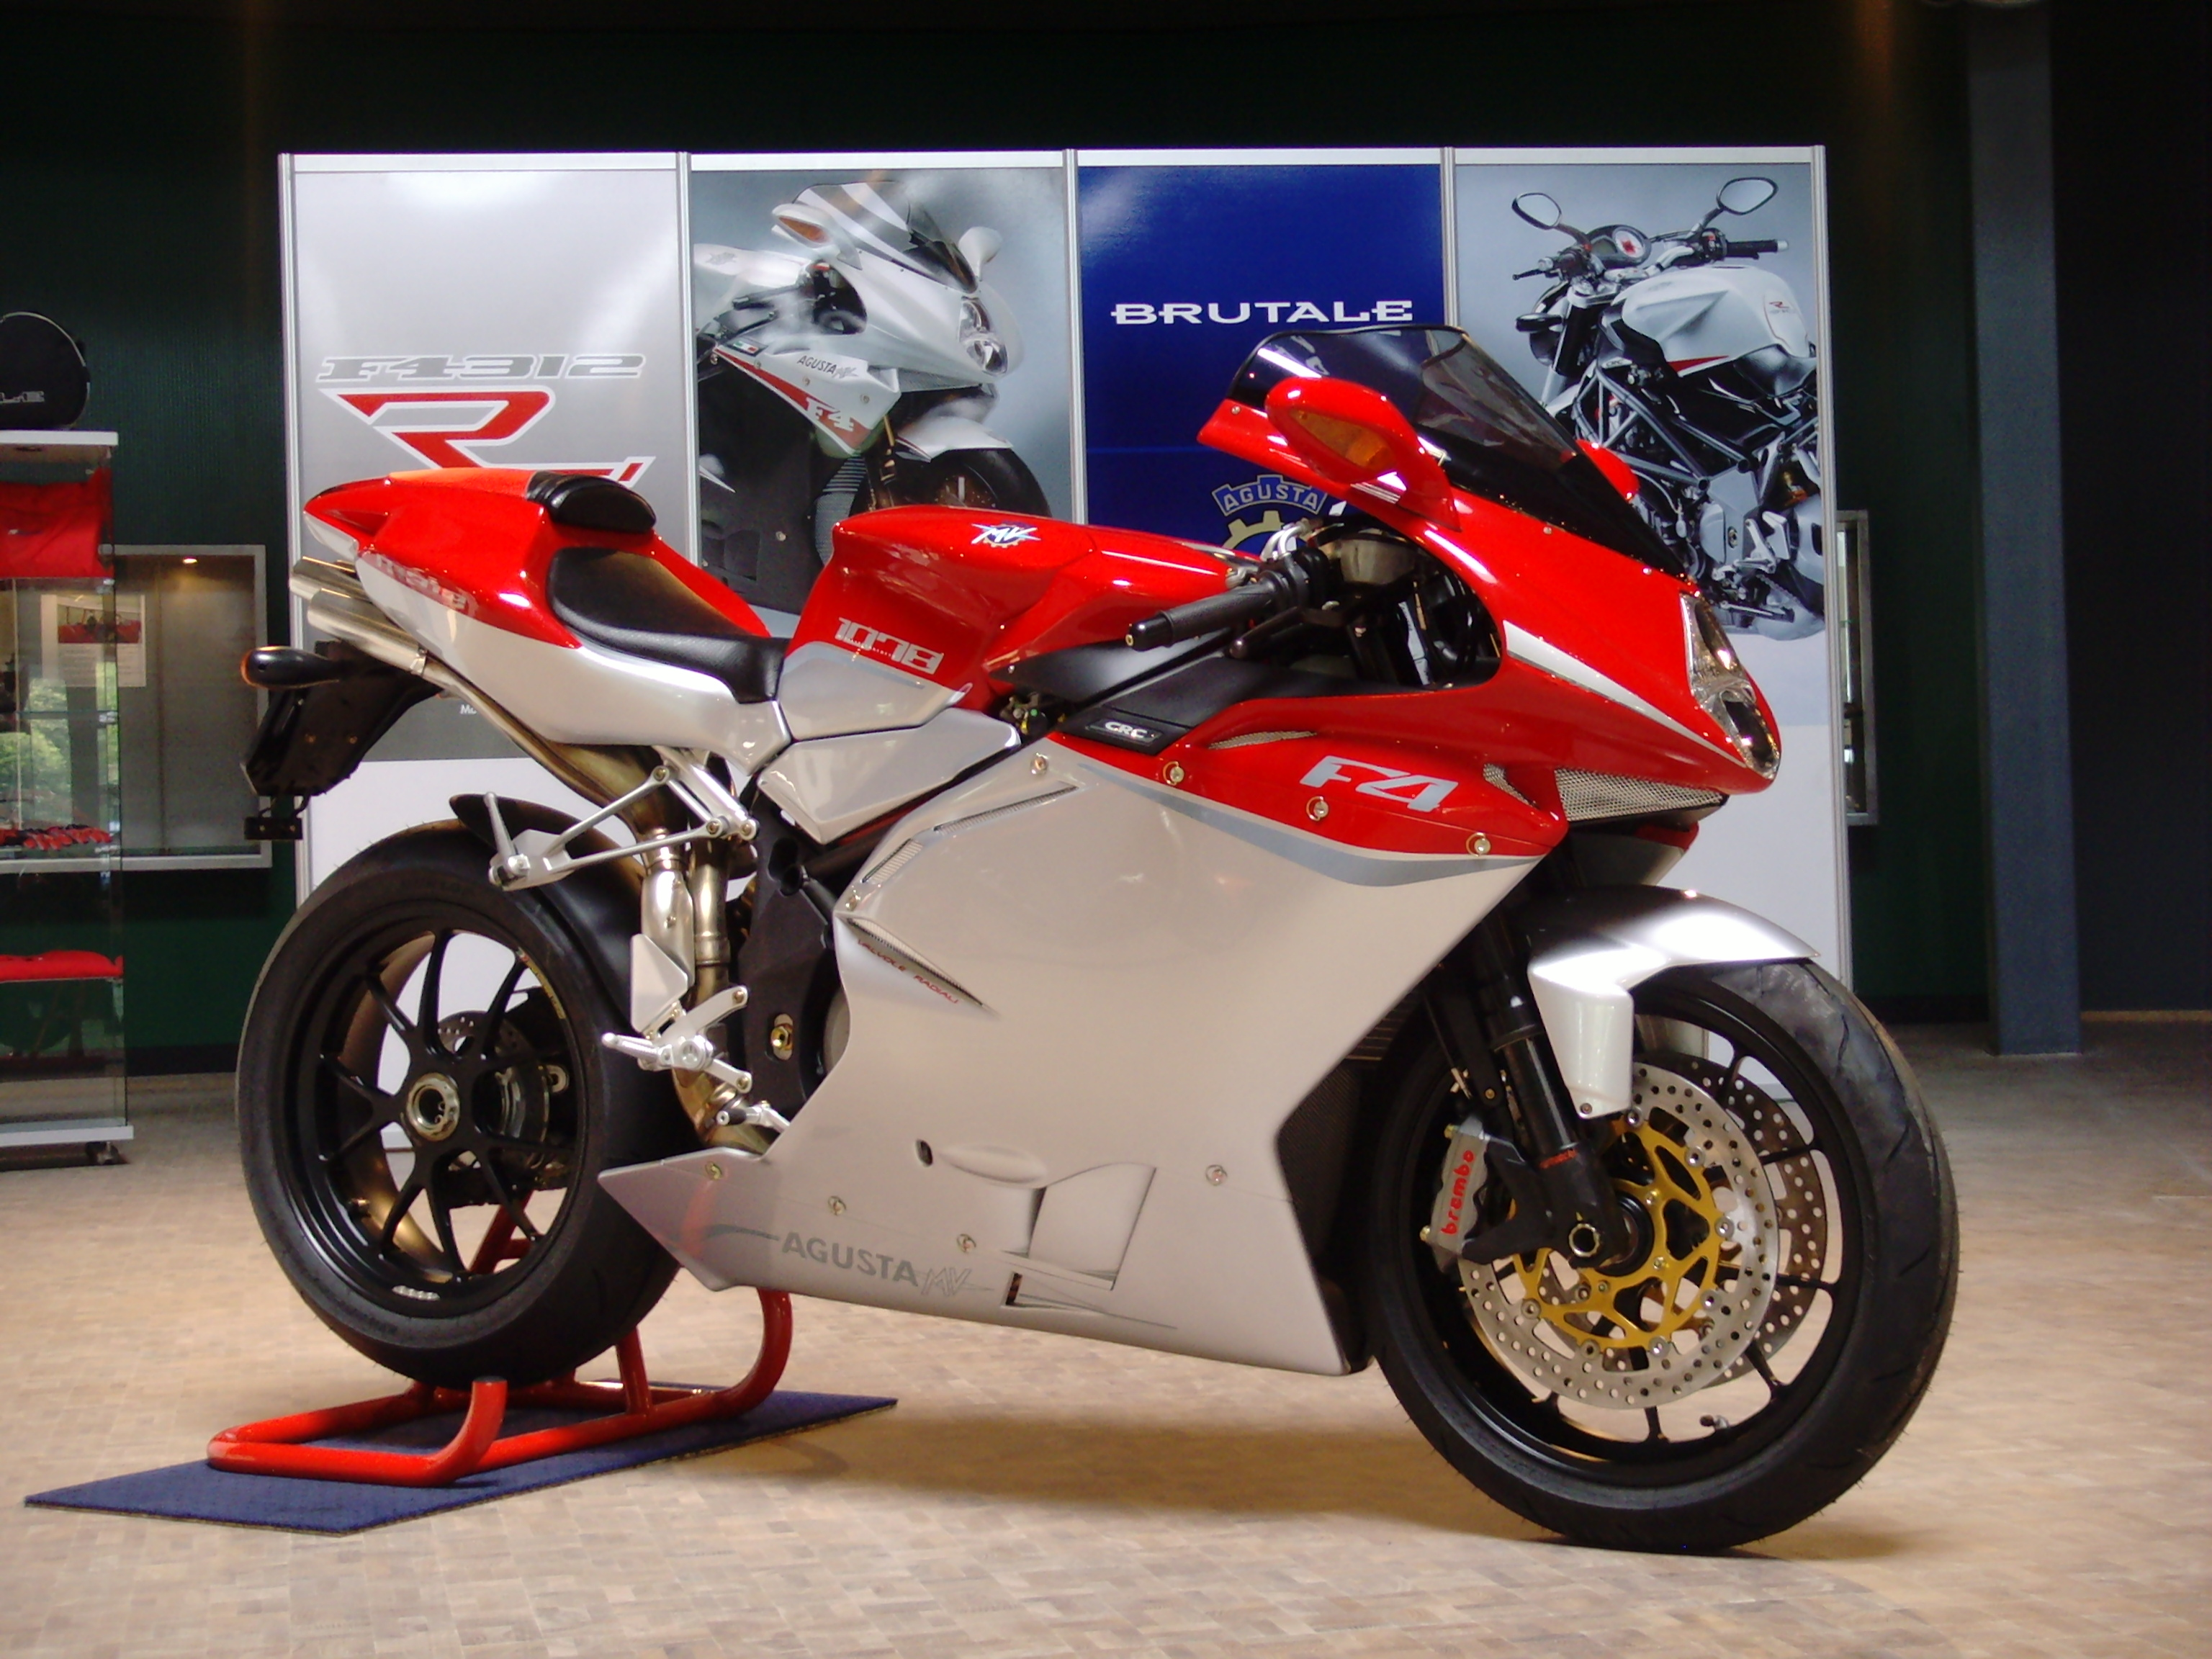 file:mv agusta f4 1078 rr312 - wikimedia commons